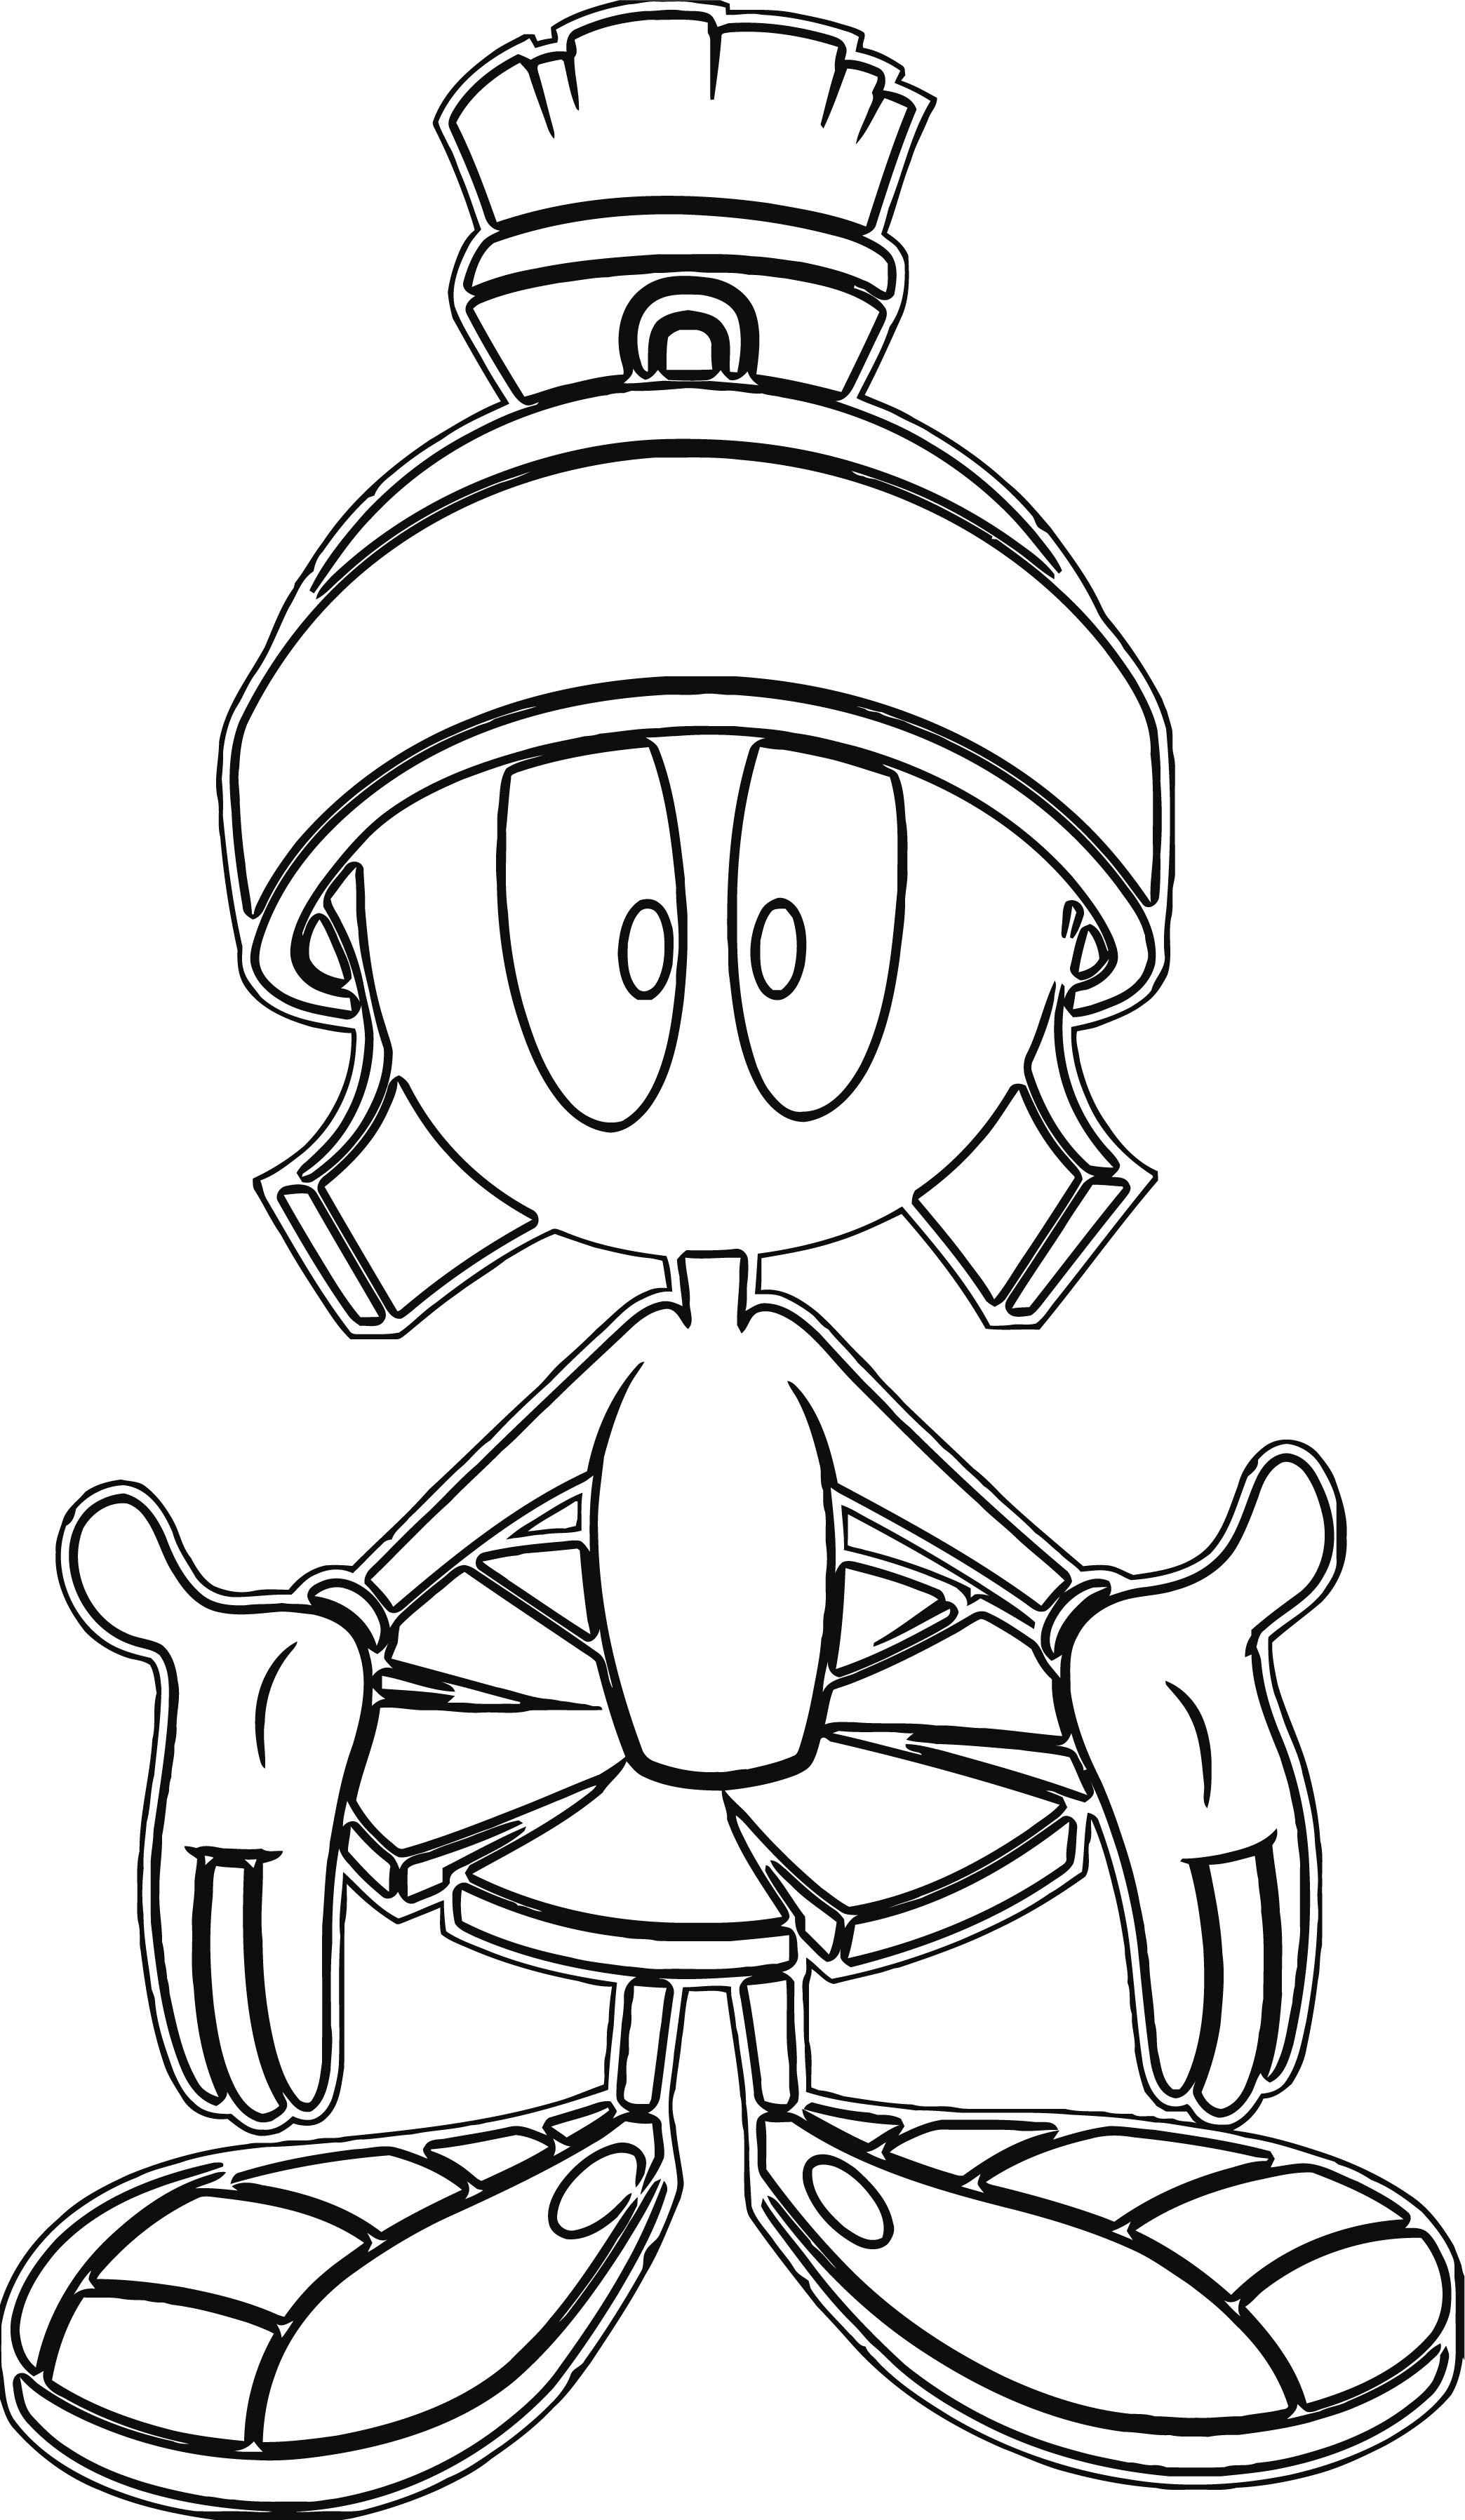 Marvin The Martian The Looney Tunes Show Front View Coloring Page